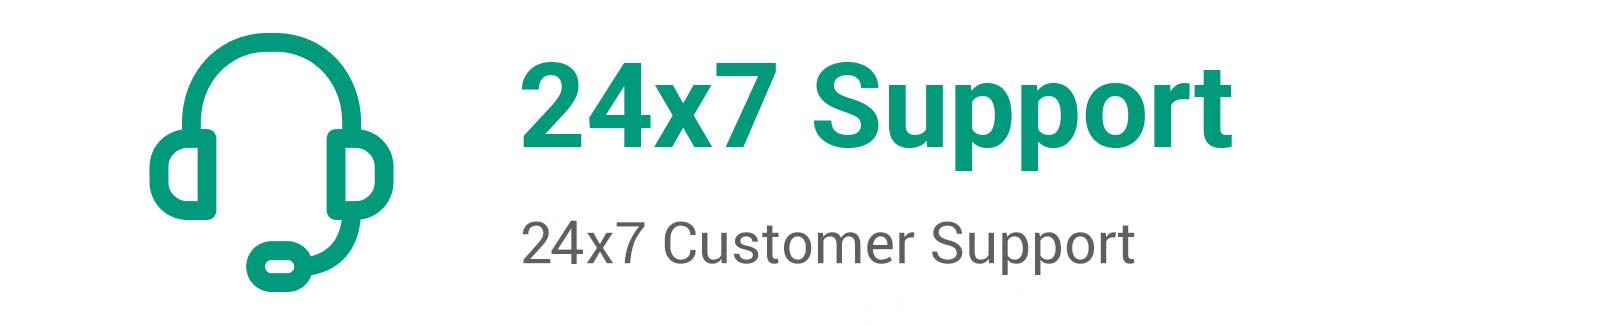 24*7 Customer Support